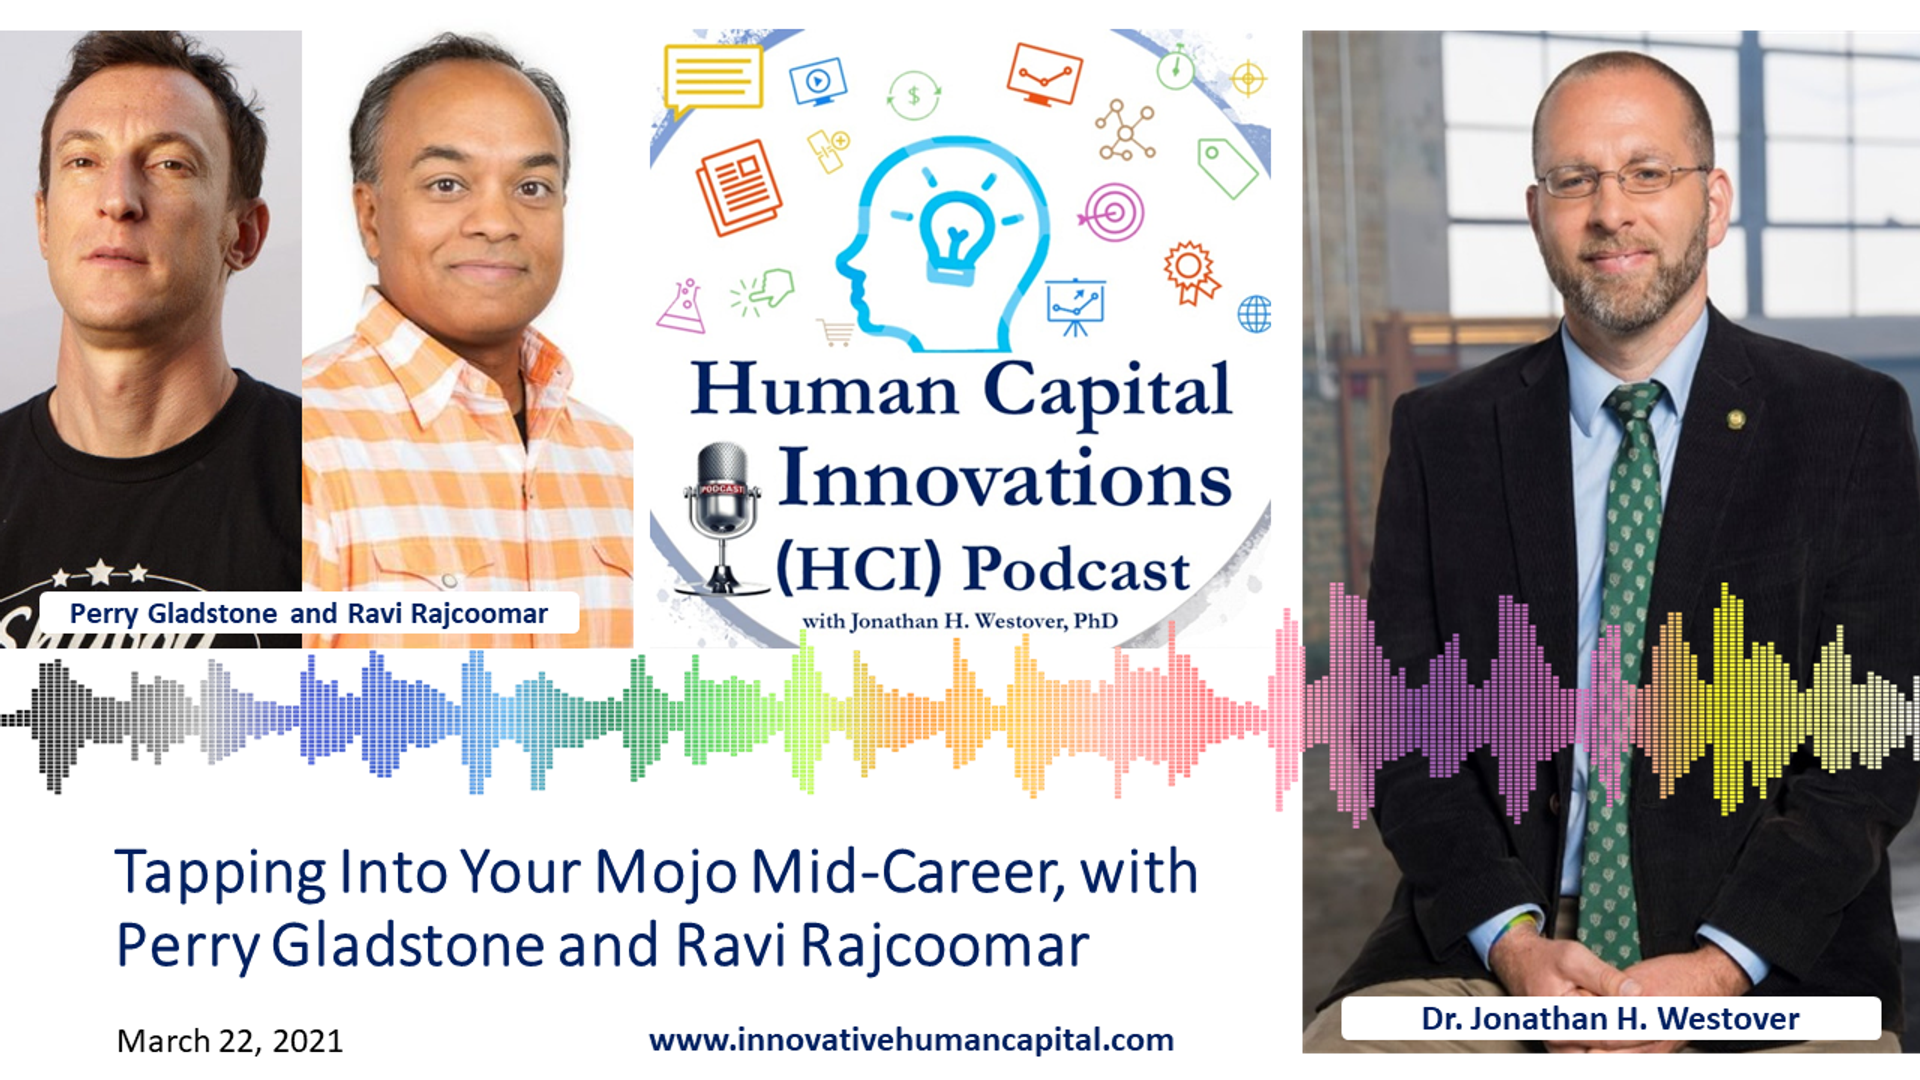 Tapping Into Your Mojo Mid-Career